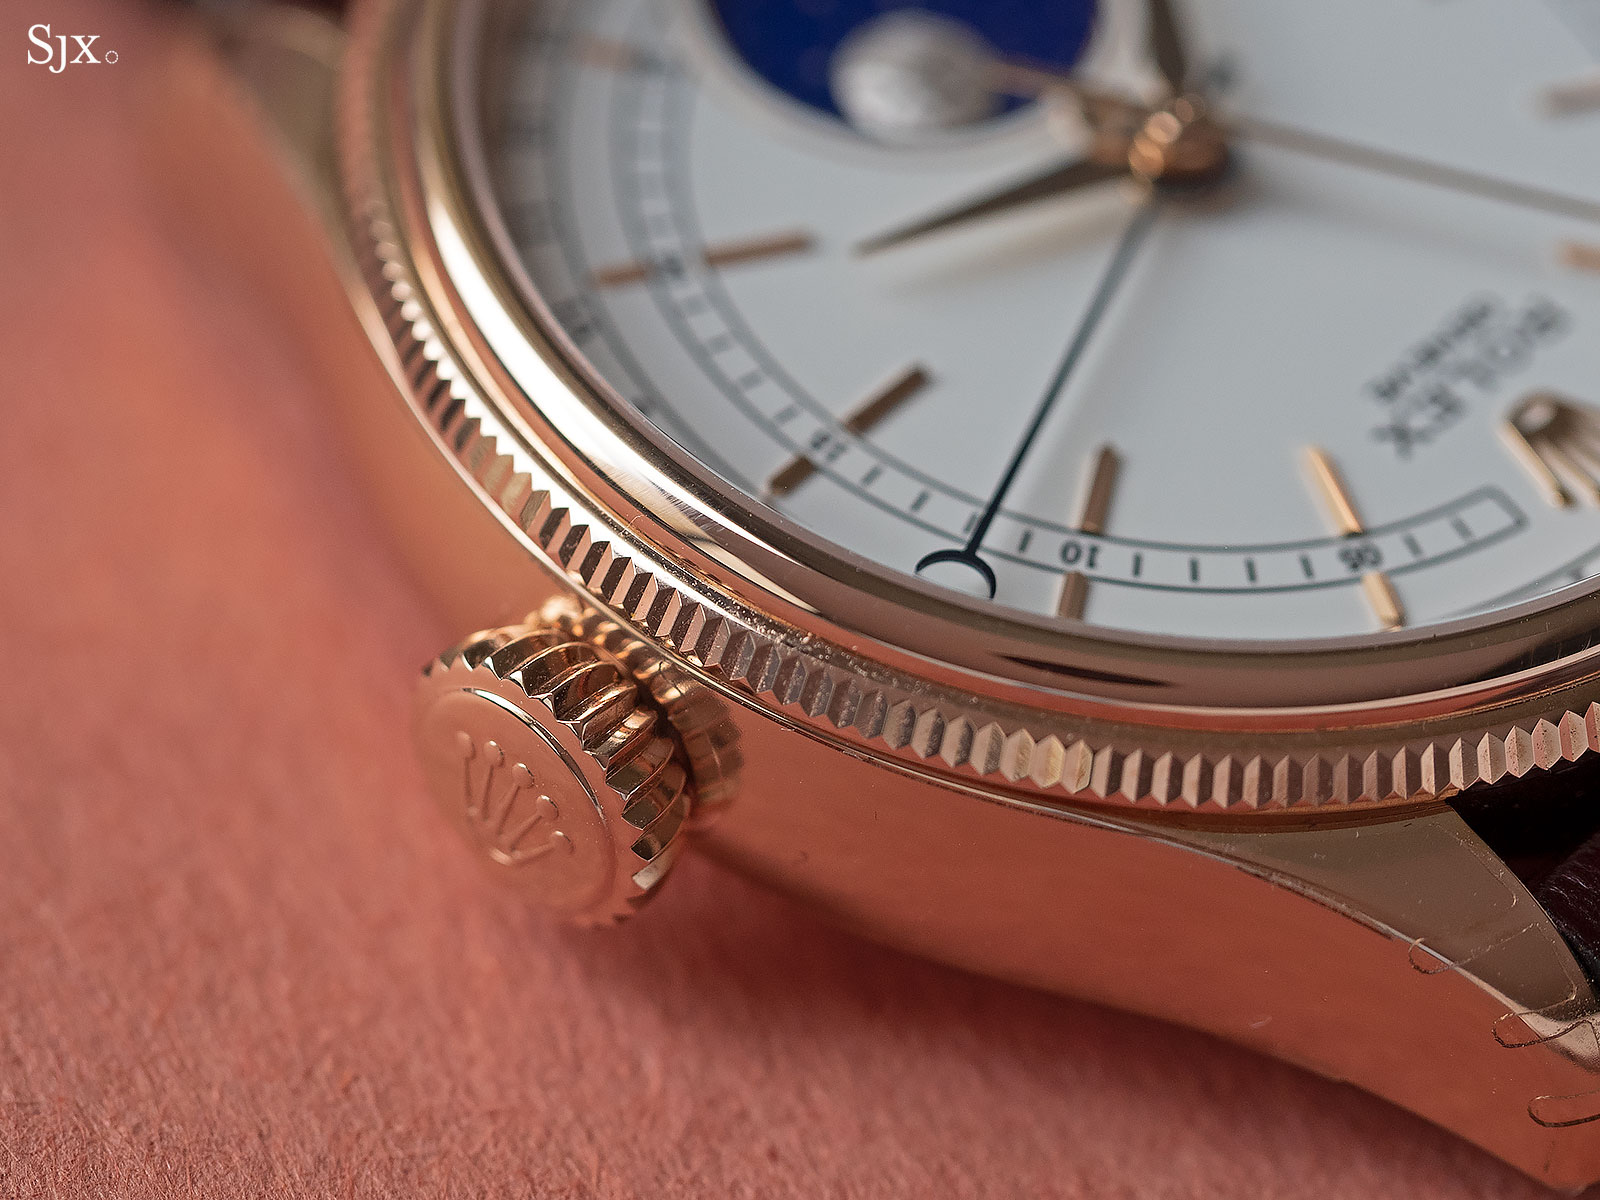 Rolex Cellini Moonphase 50535 review 8